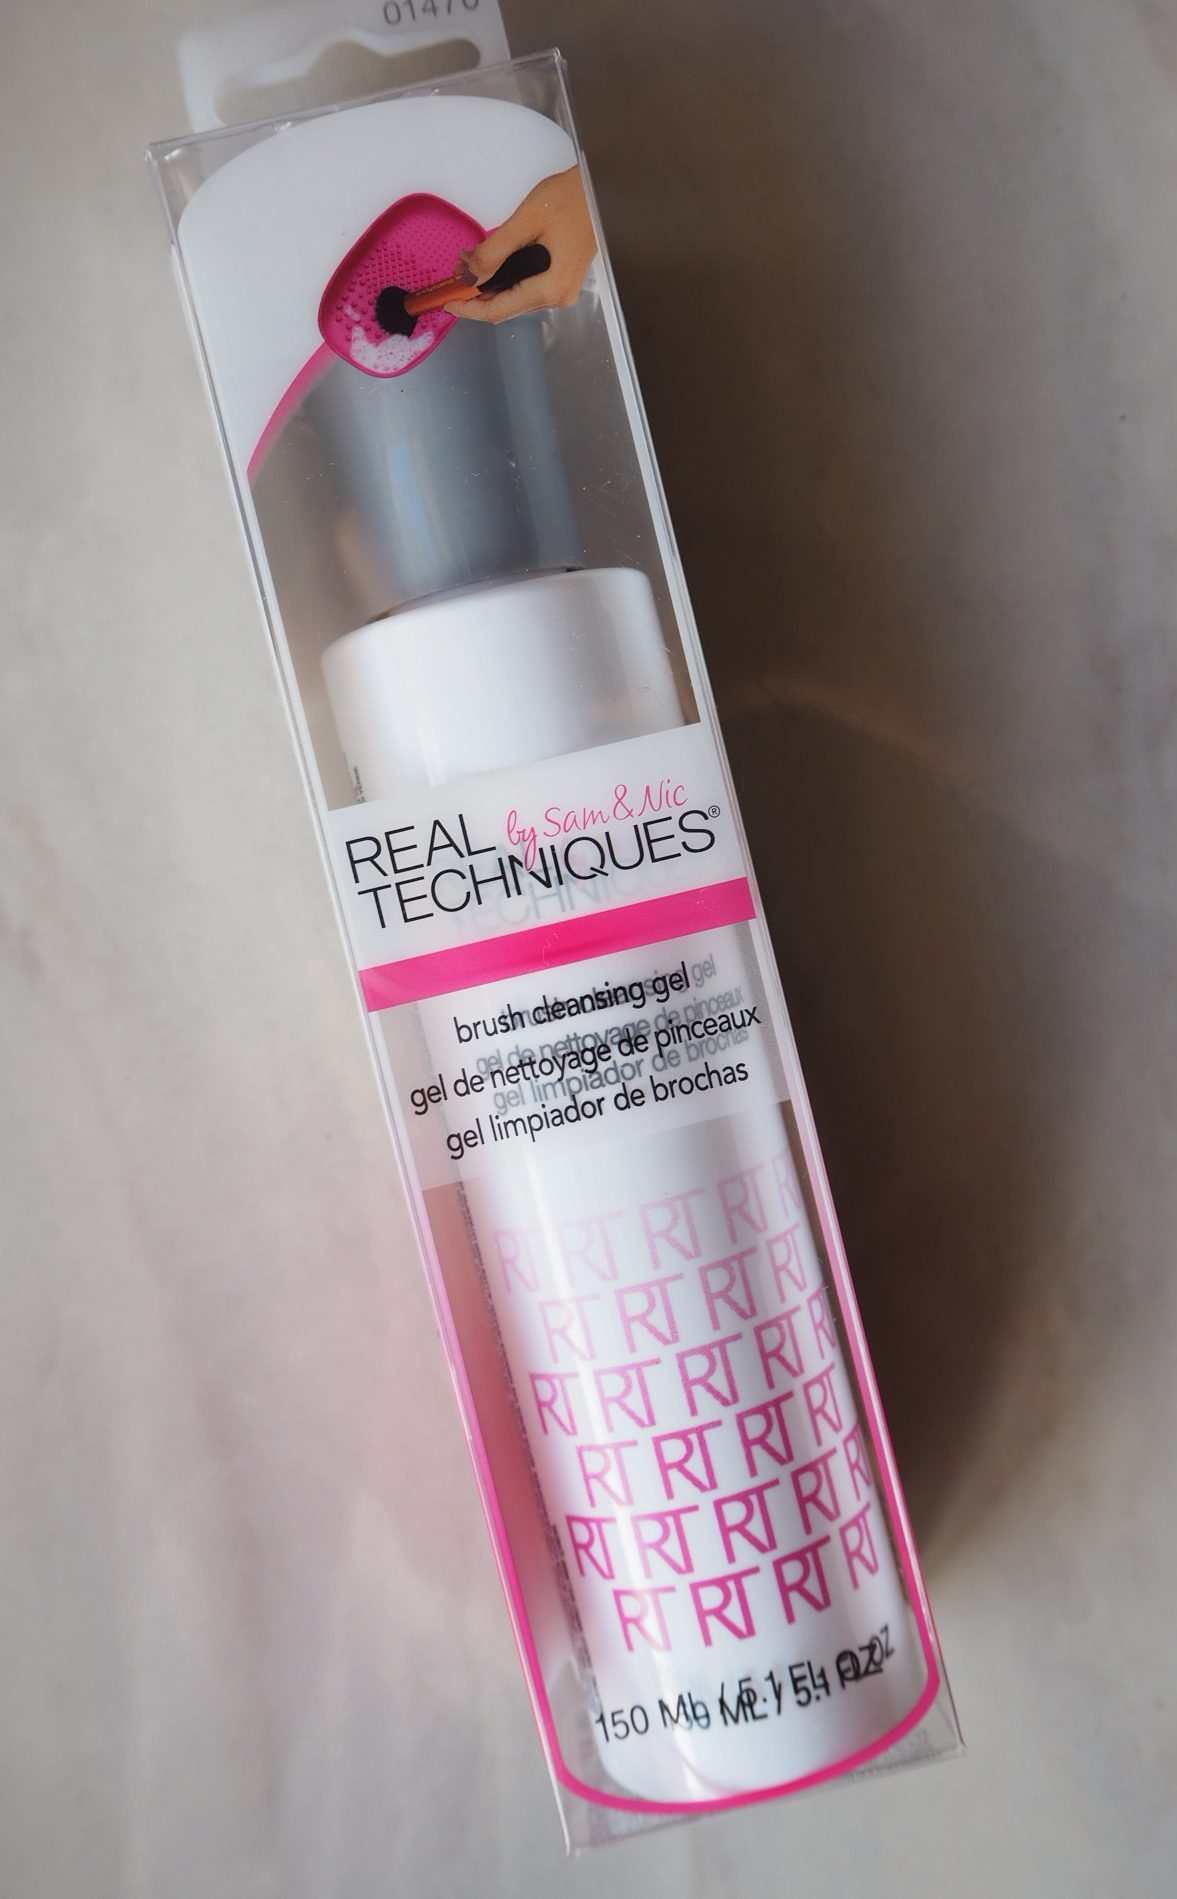 Real Techniques Cleansing Gel